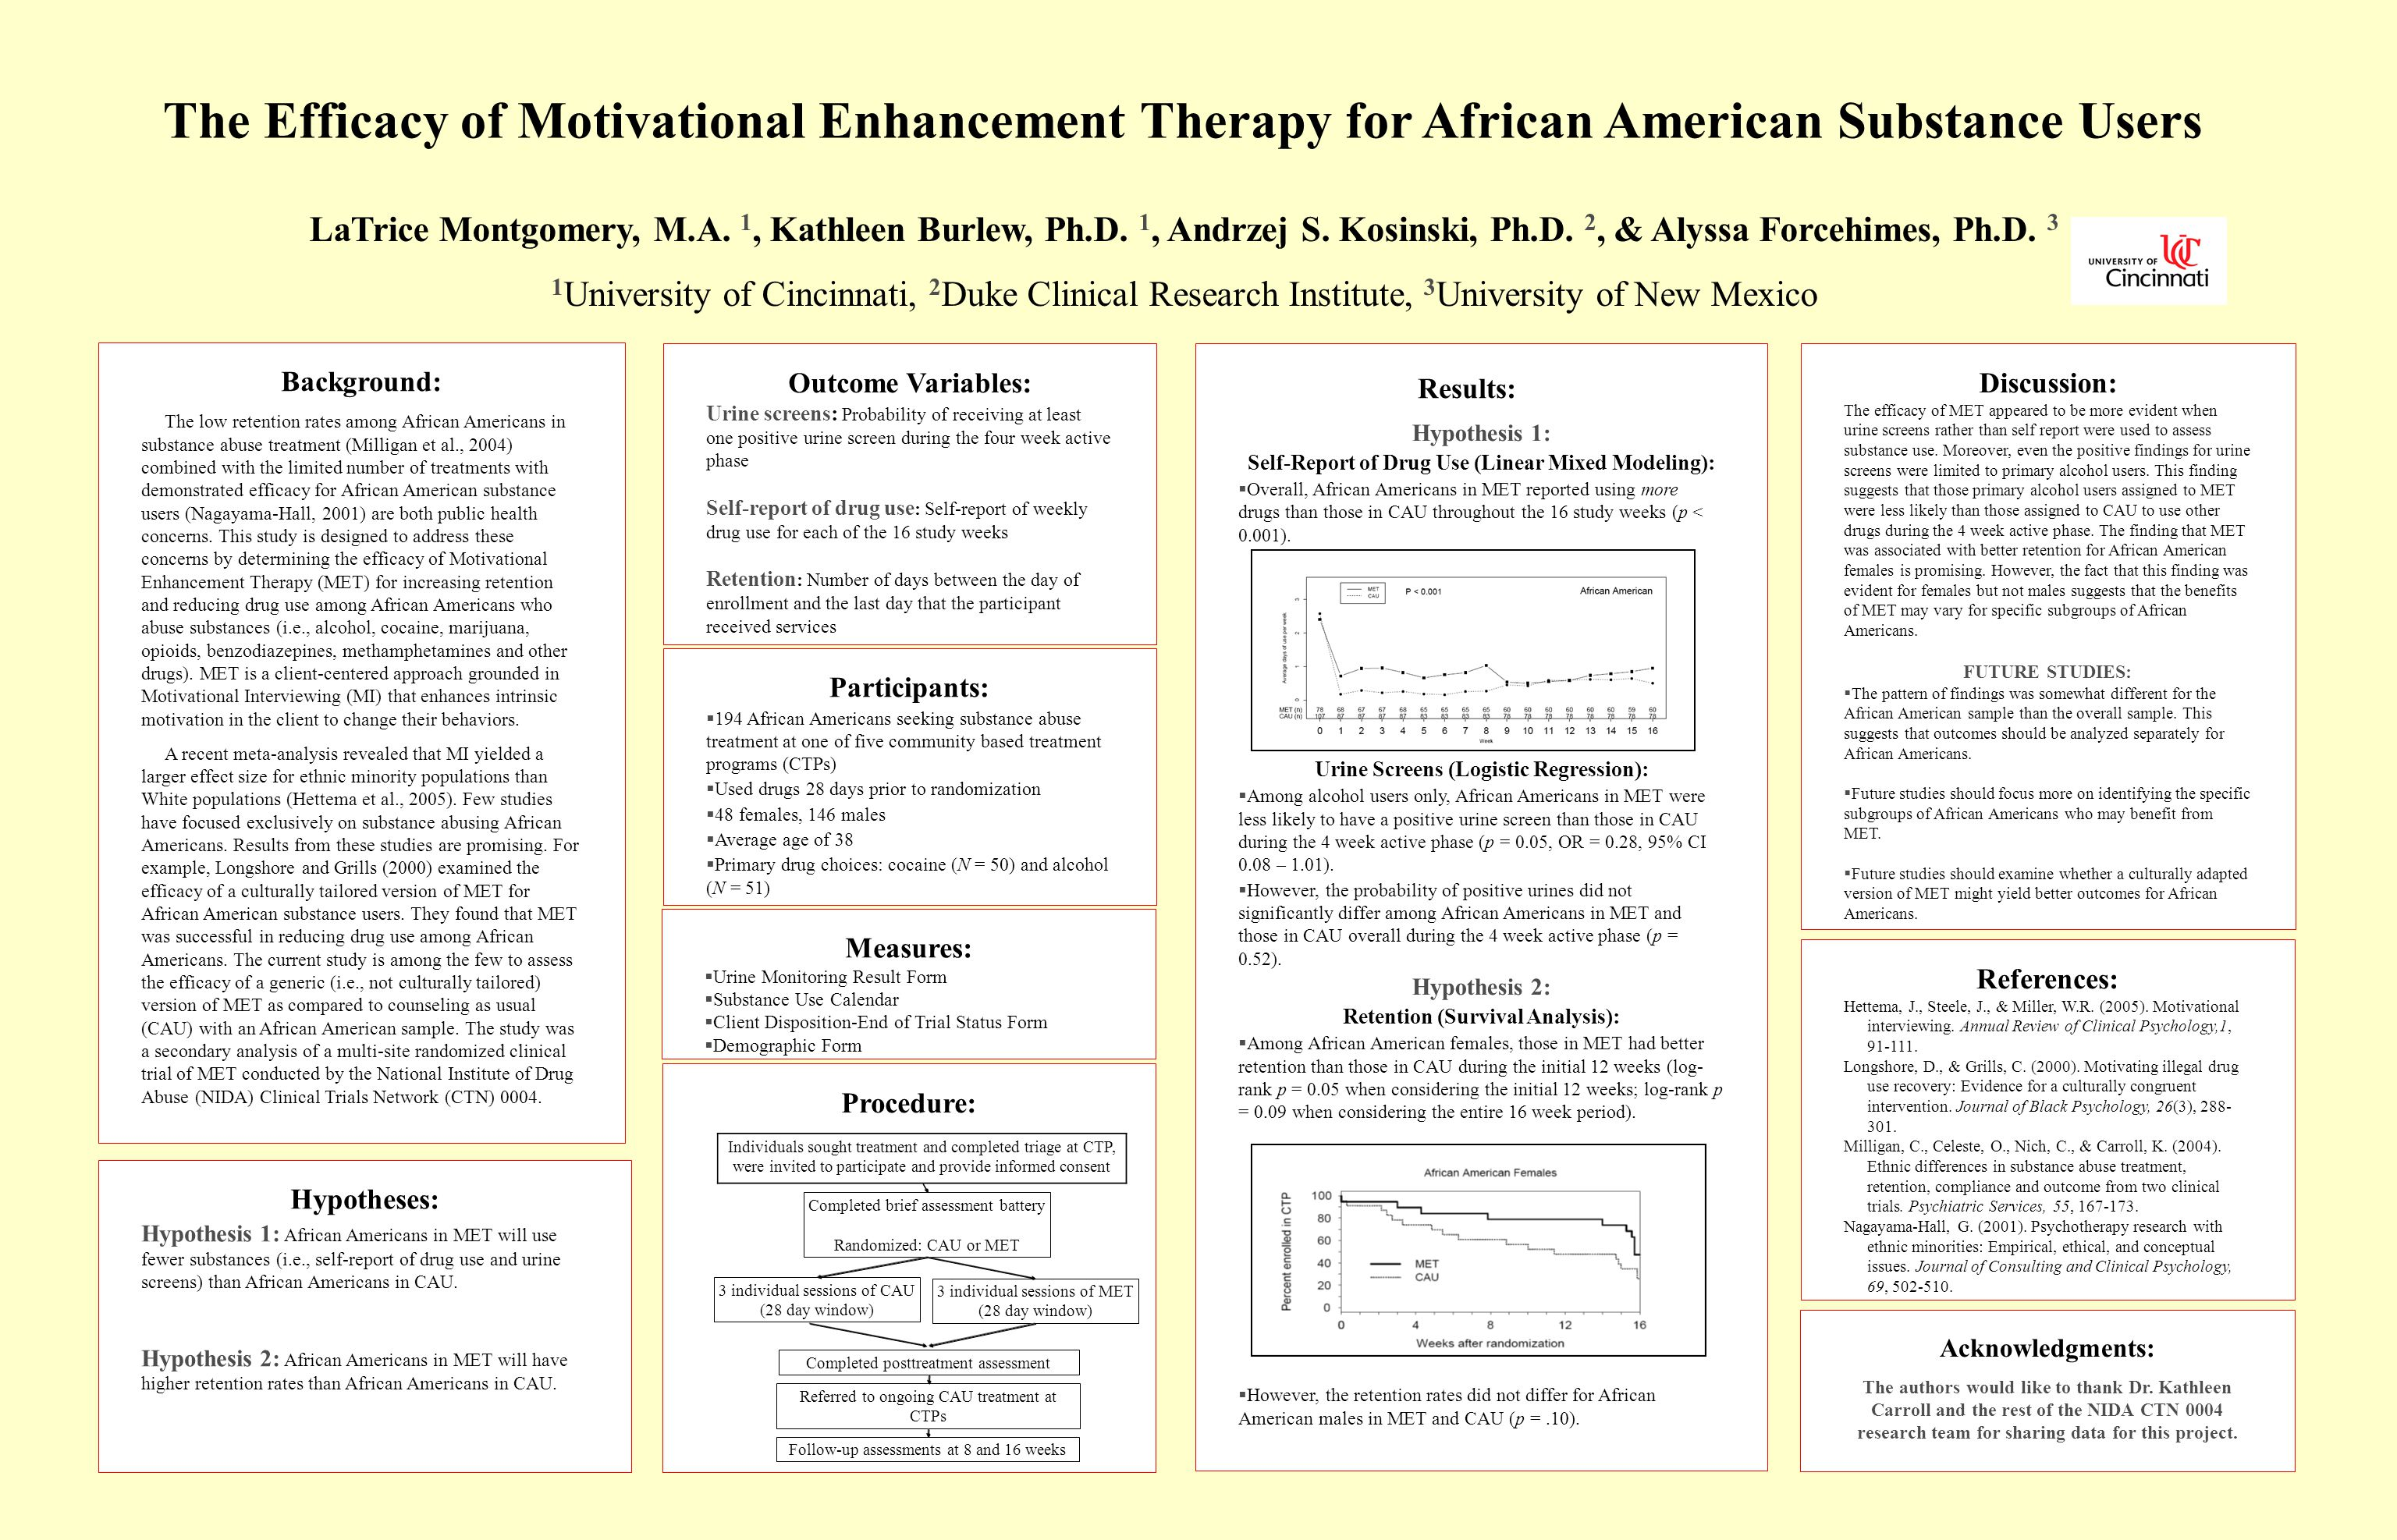 Background: The low retention rates among African Americans in substance abuse treatment (Milligan et al., 2004) combined with the limited number of treatments with demonstrated efficacy for African American substance users (Nagayama-Hall, 2001) are both public health concerns.